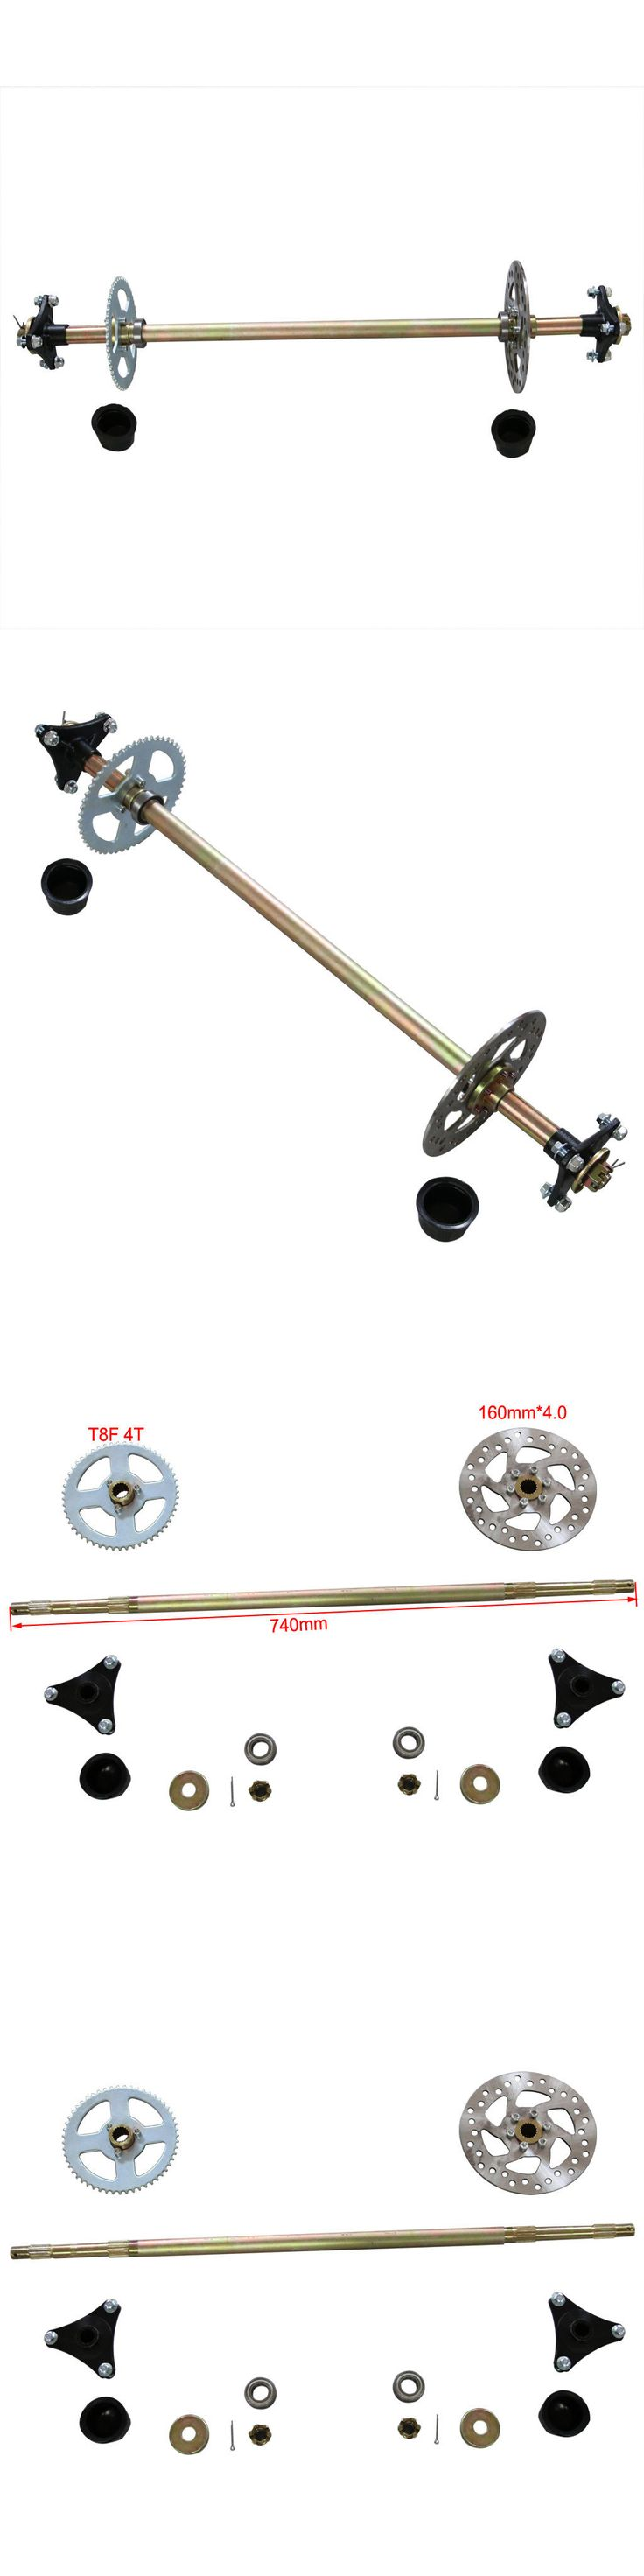 Parts and Accessories 64657: 740Mm 50 70 90 110Cc Atv Quad Bike Axle (Rear) Complete Assembly+Carrier Hub T8f -> BUY IT NOW ONLY: $99.99 on eBay!